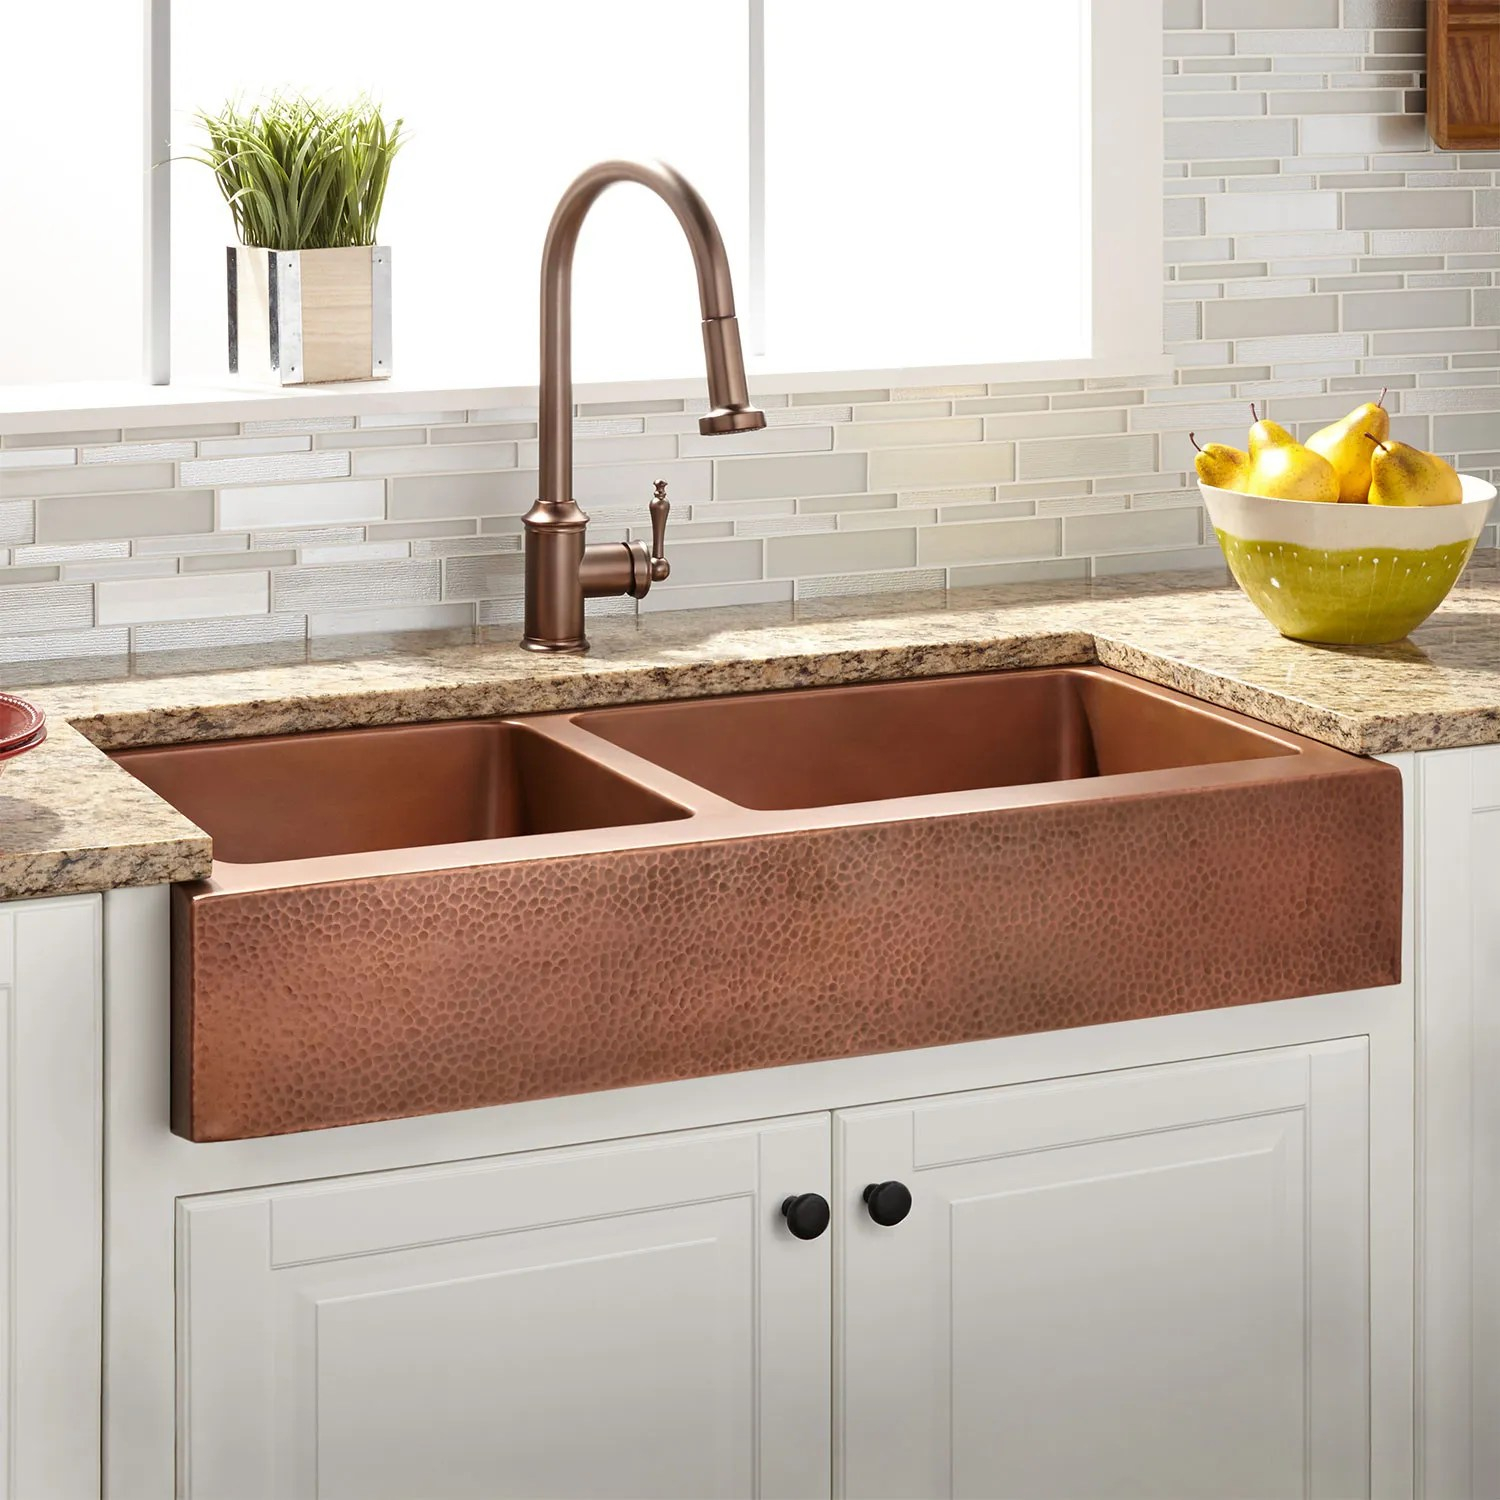 33 vernon 60 40 double bowl hammered copper retrofit on kitchens with farmhouse sinks id=16461